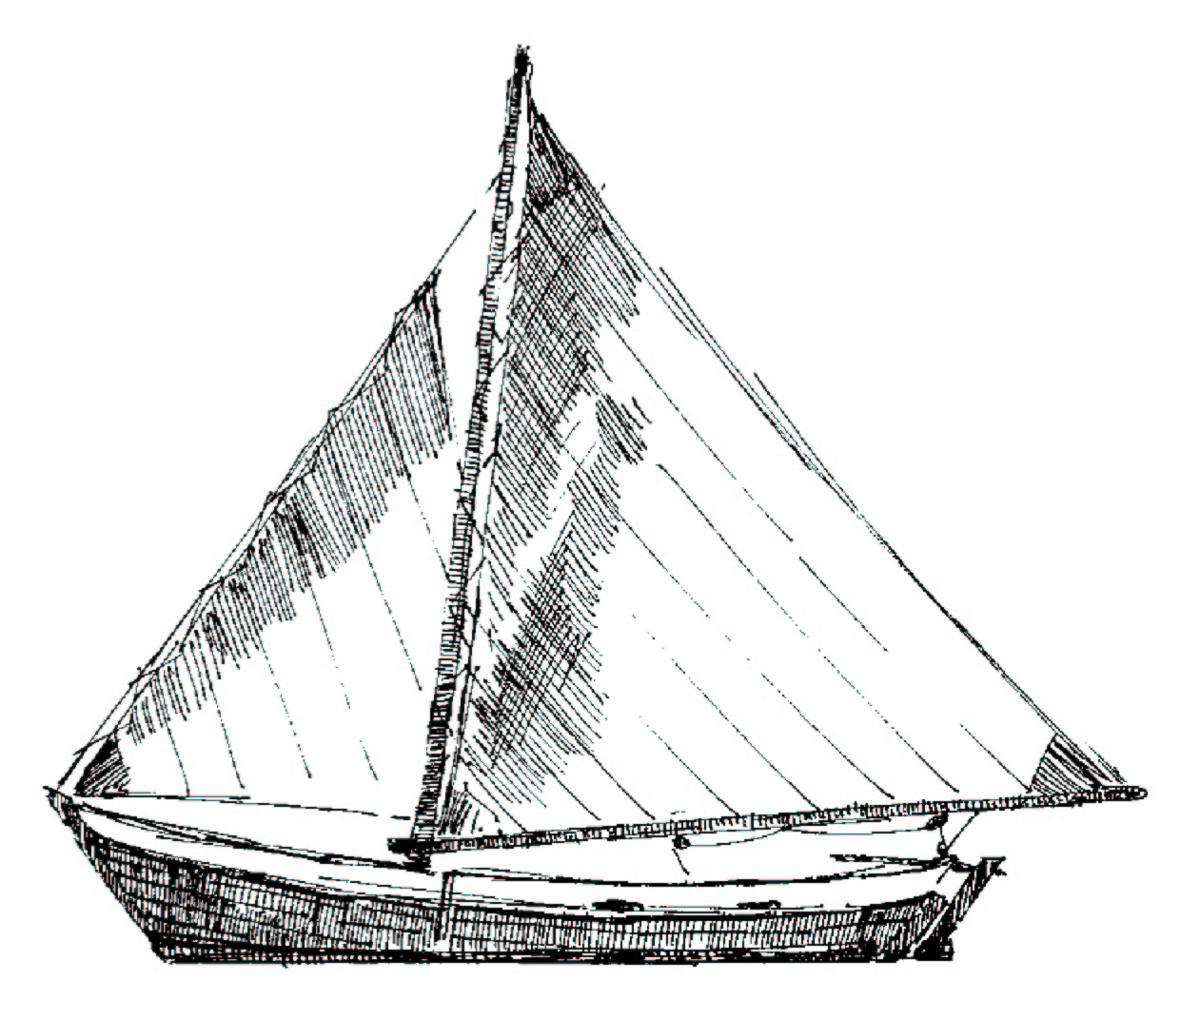 Sea Dog Blog Cruising Guides Simple Engine Diagram Images Pictures Becuo Sketch Tortola Sloop